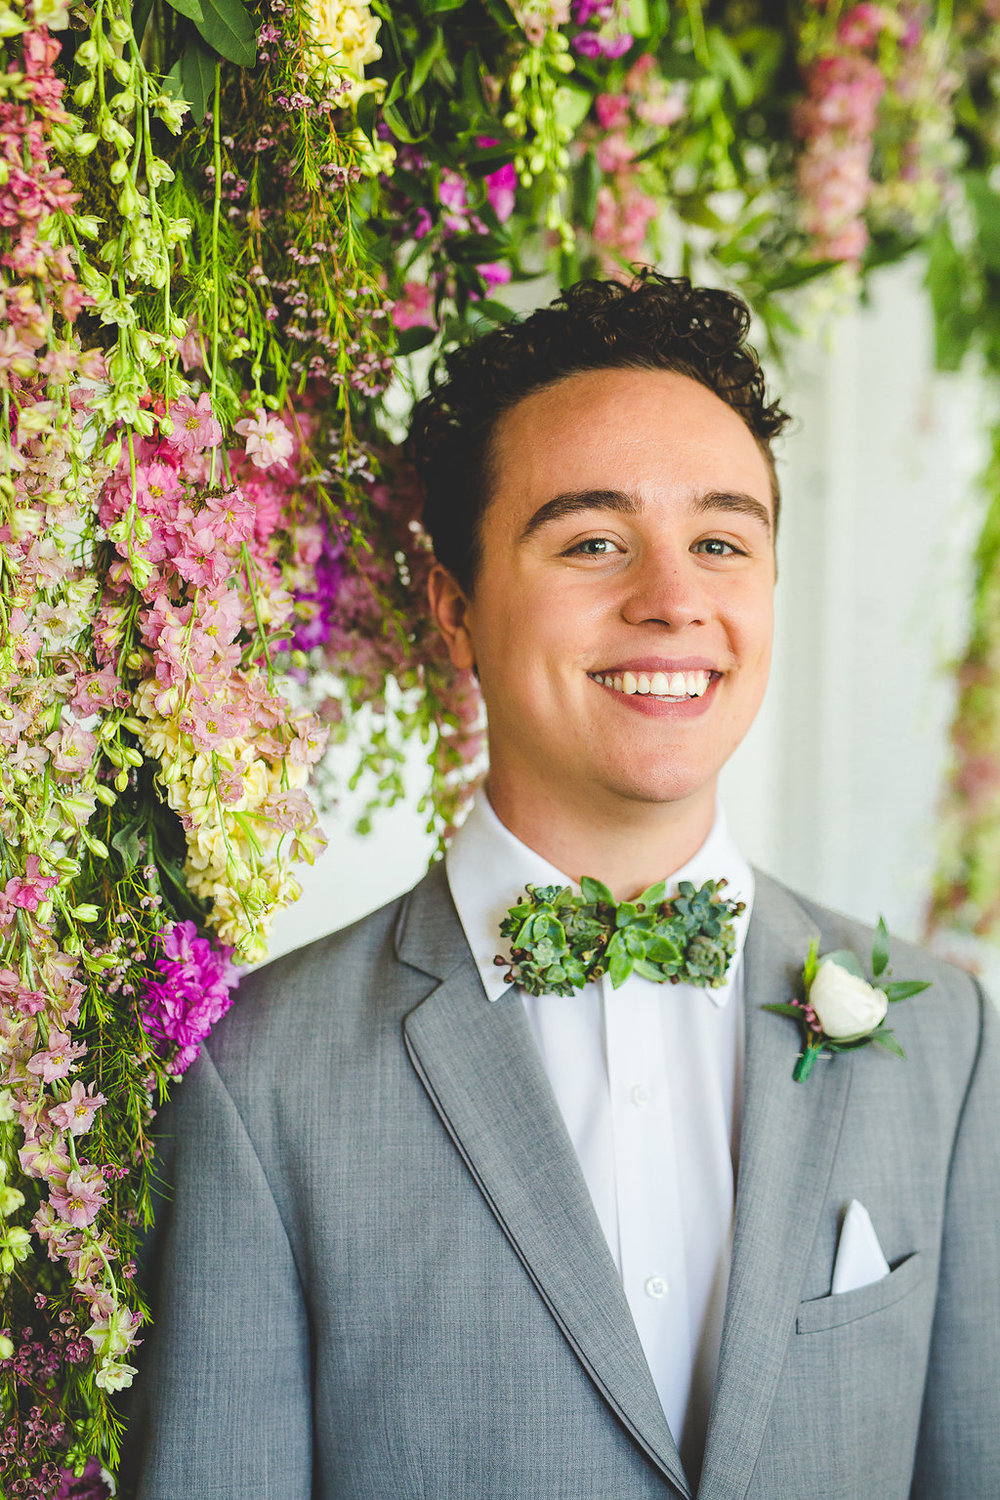 Succulent Bowtie and Flower Wall